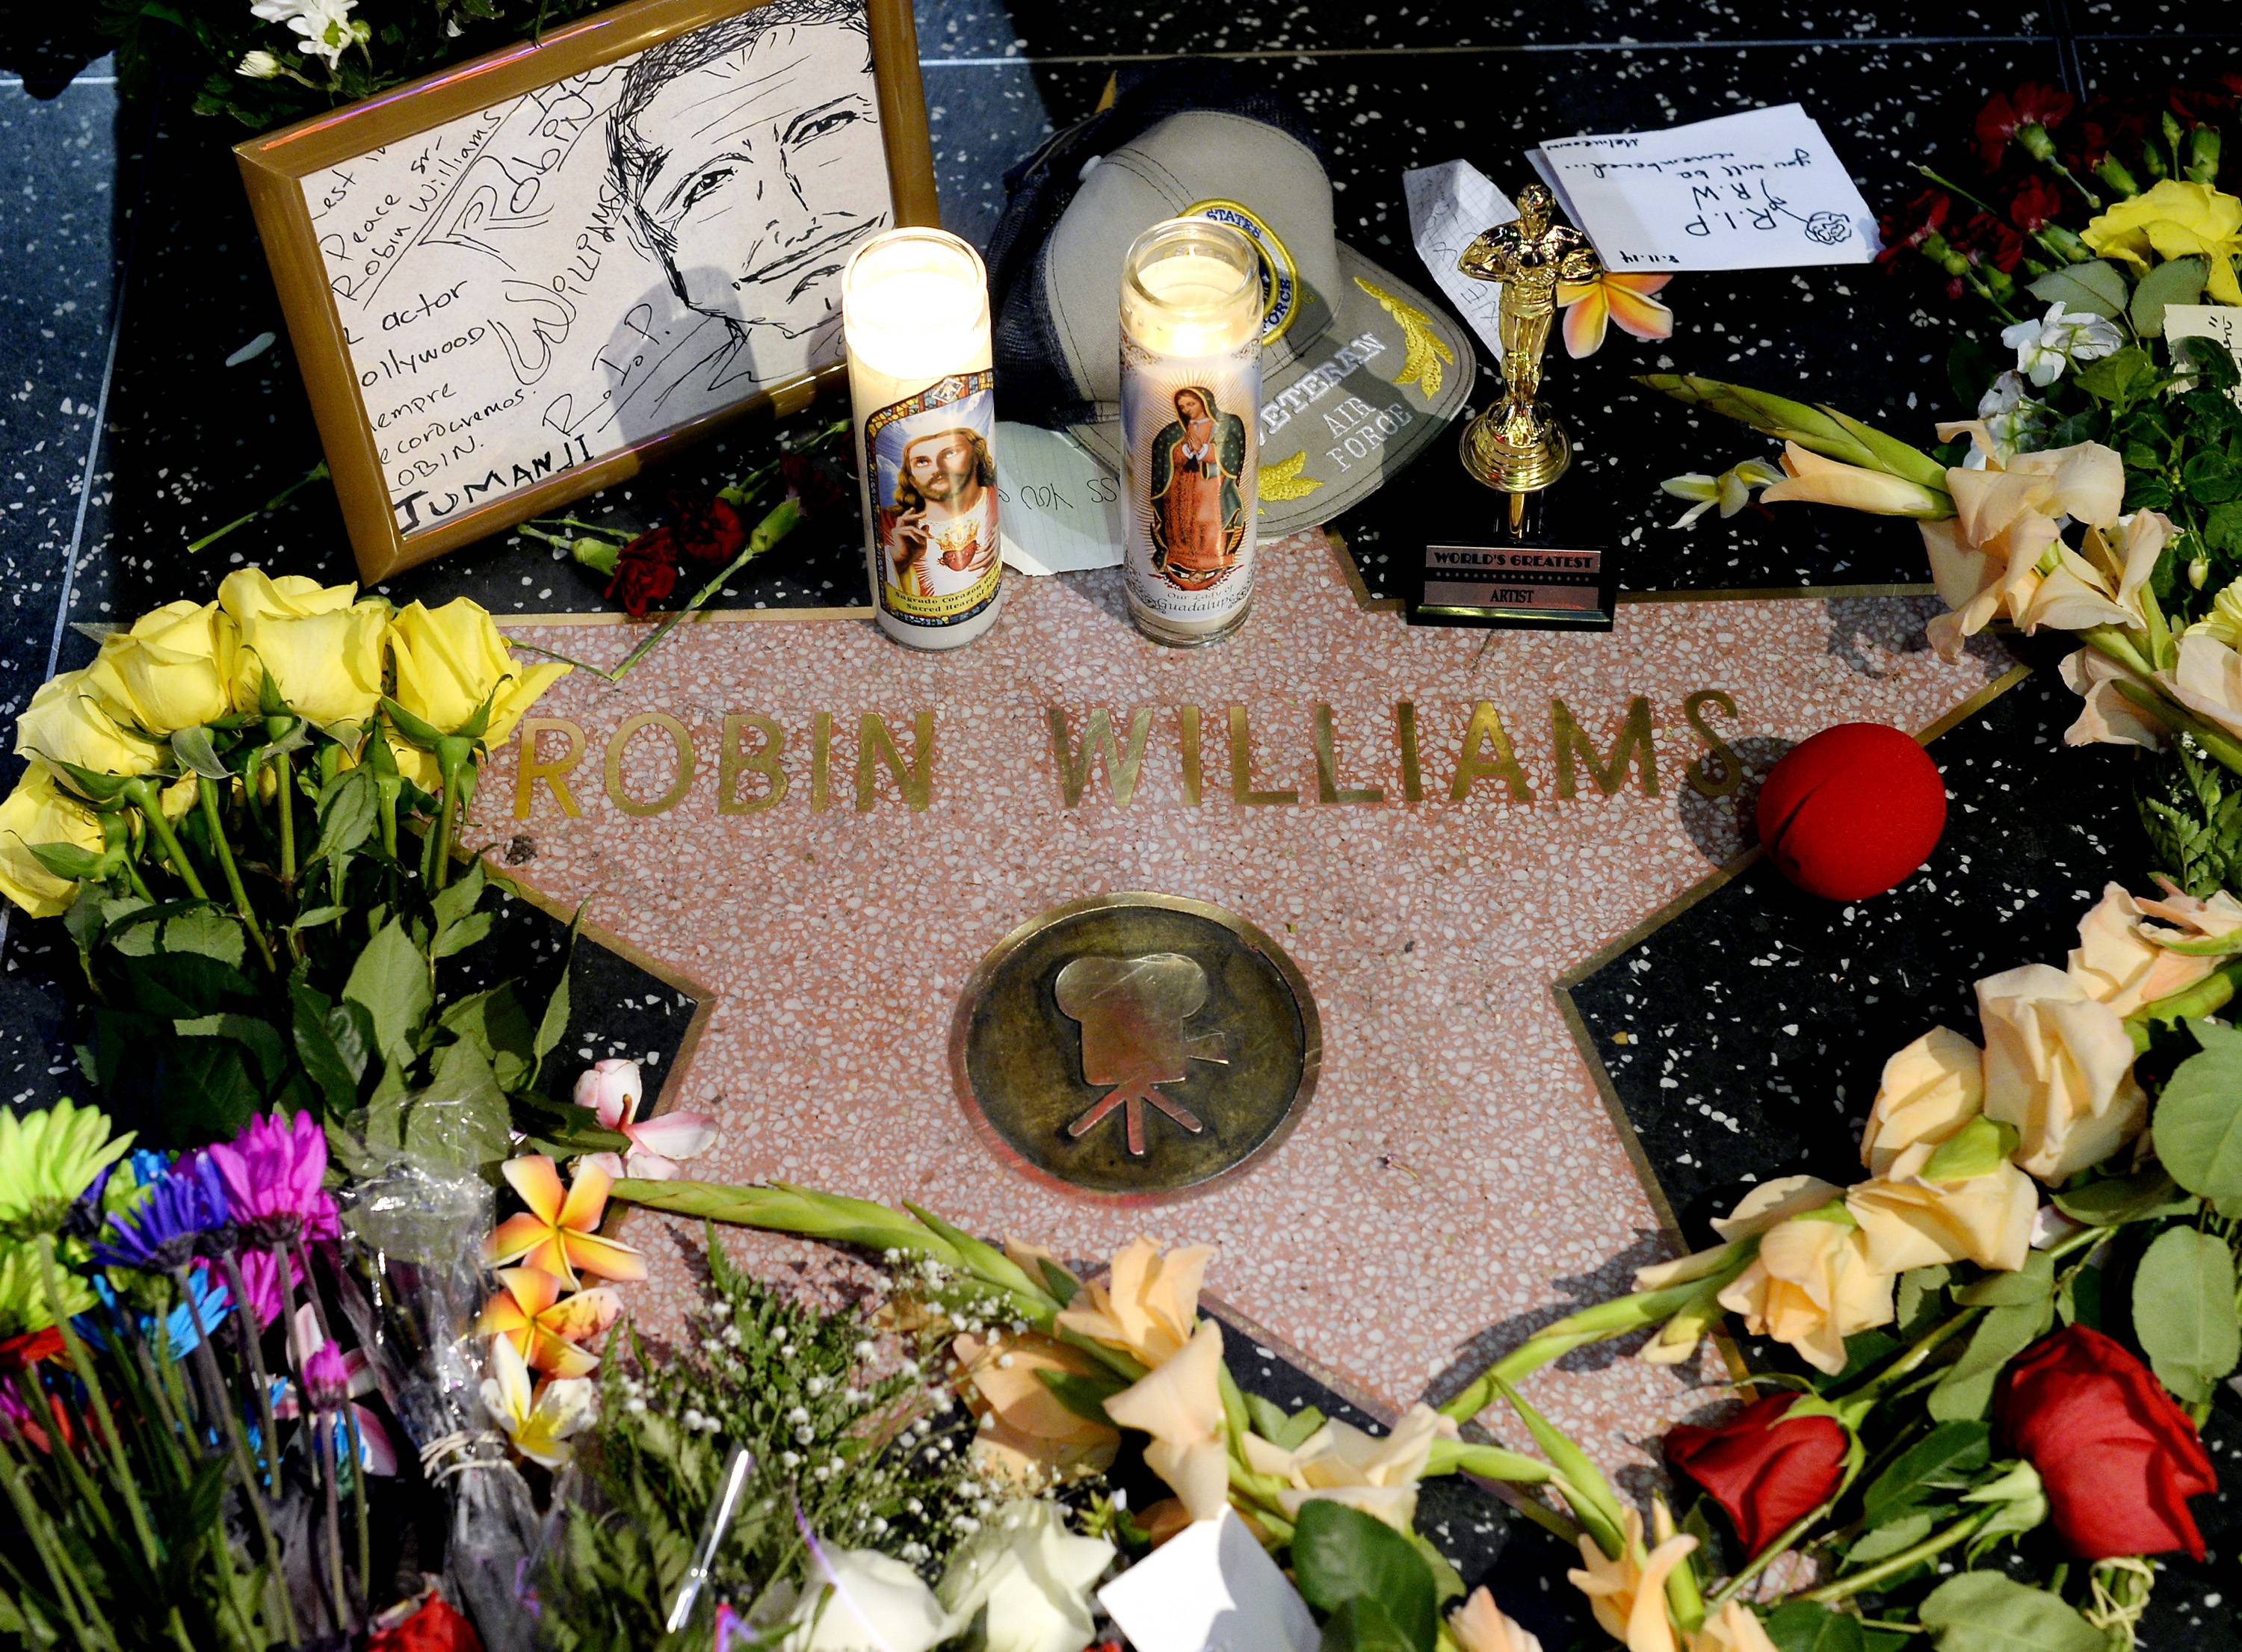 Flowers are placed in memory of actor/comedian Robin Williams on his Walk of Fame star in the Hollywood district of Los Angeles on Monday.